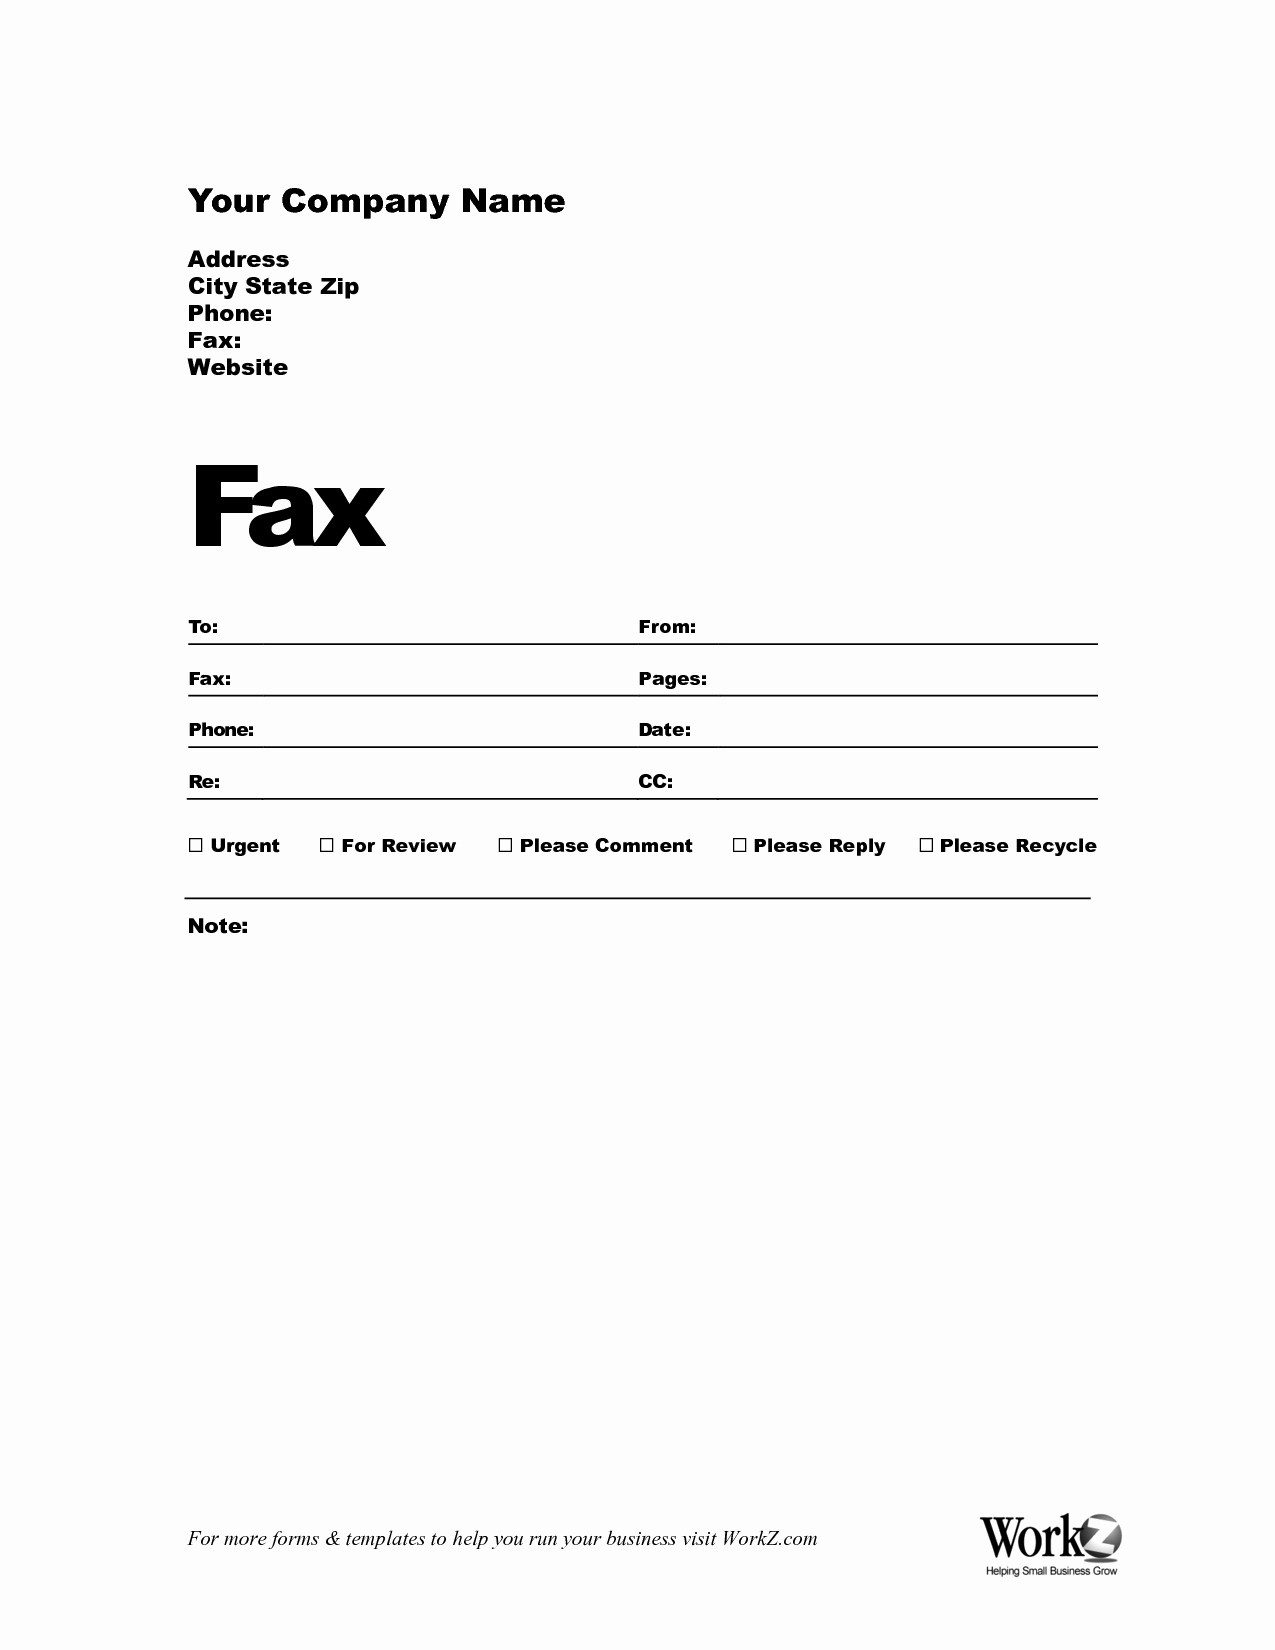 Word Fax Cover Sheet Templates New Free Fax Cover Sheet Template Bamboodownunder